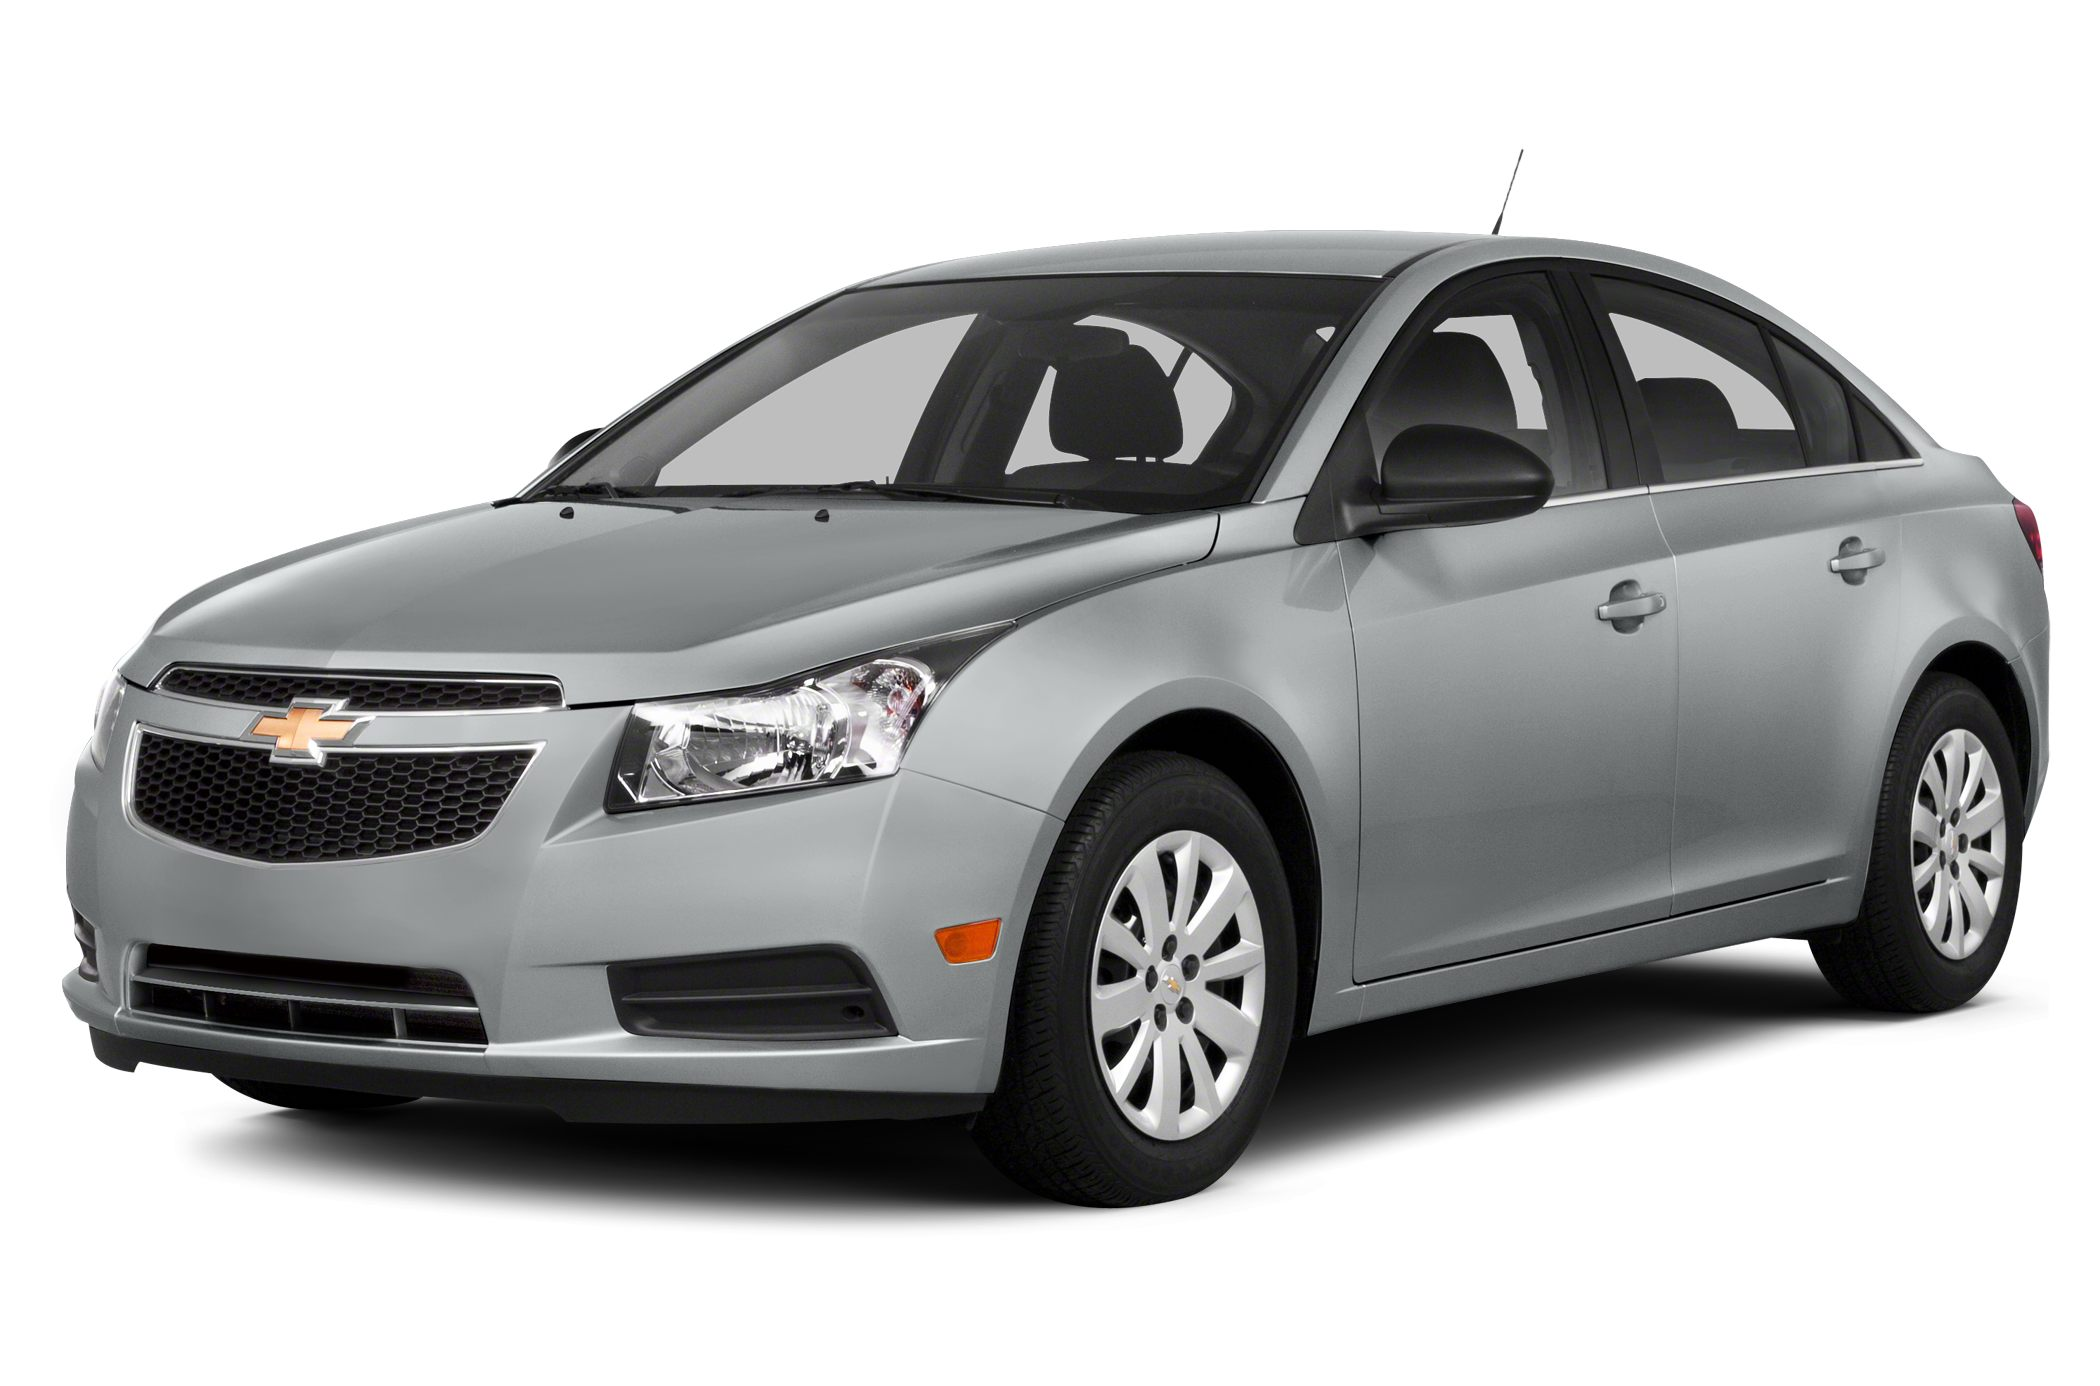 2014 Chevrolet Cruze ECO Sedan for sale in Central Square for $21,510 with 98 miles.